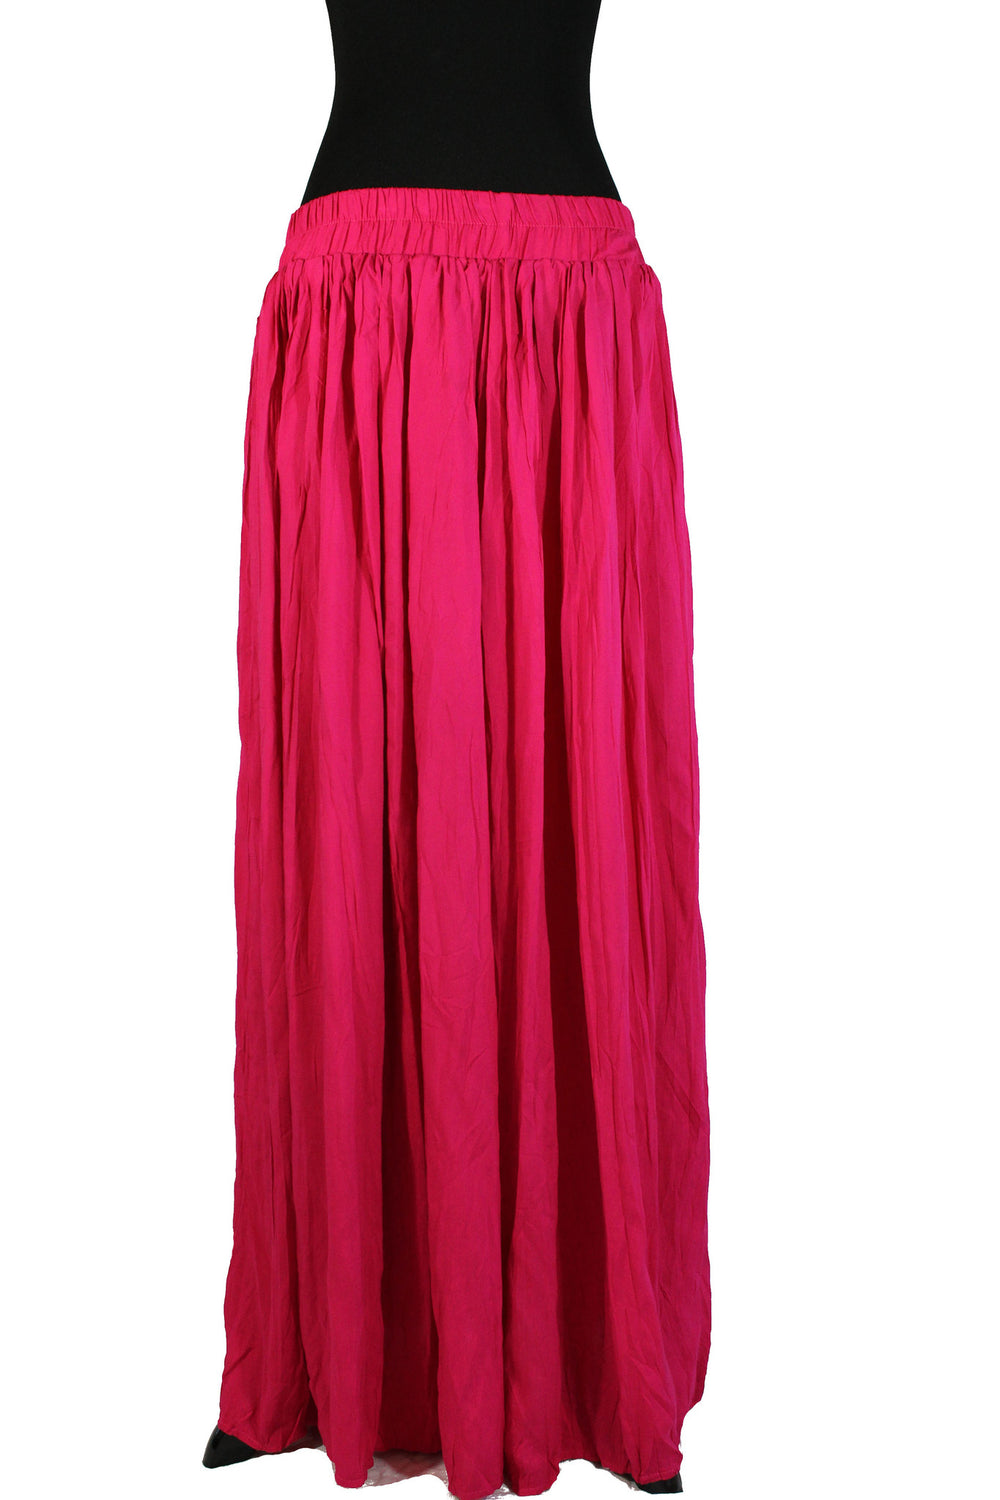 hot pink pleated maxi skirt